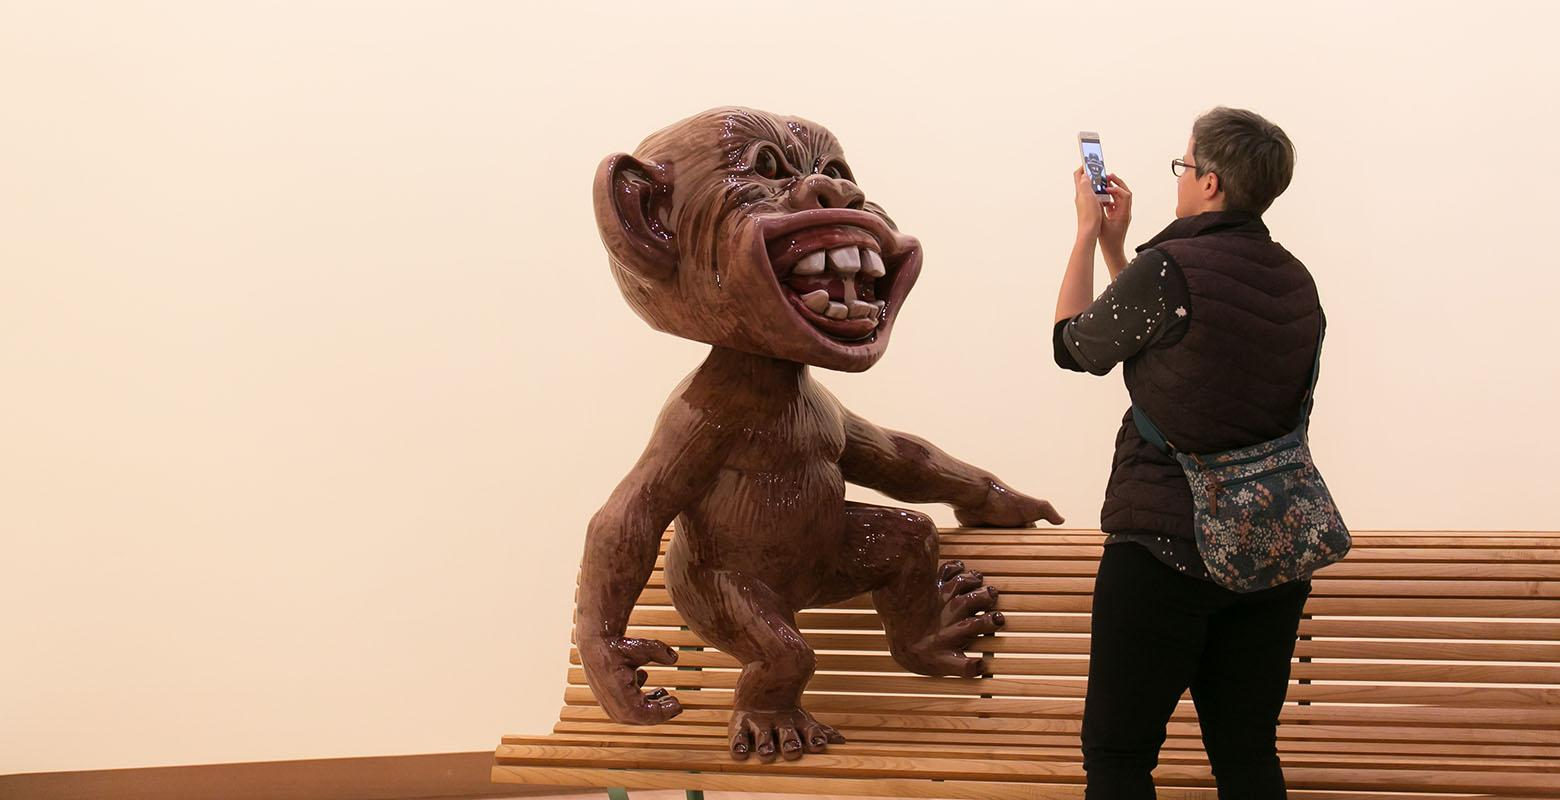 A woman takes a photo of Tiki Tour, an highly glossy sculpture of a monkey